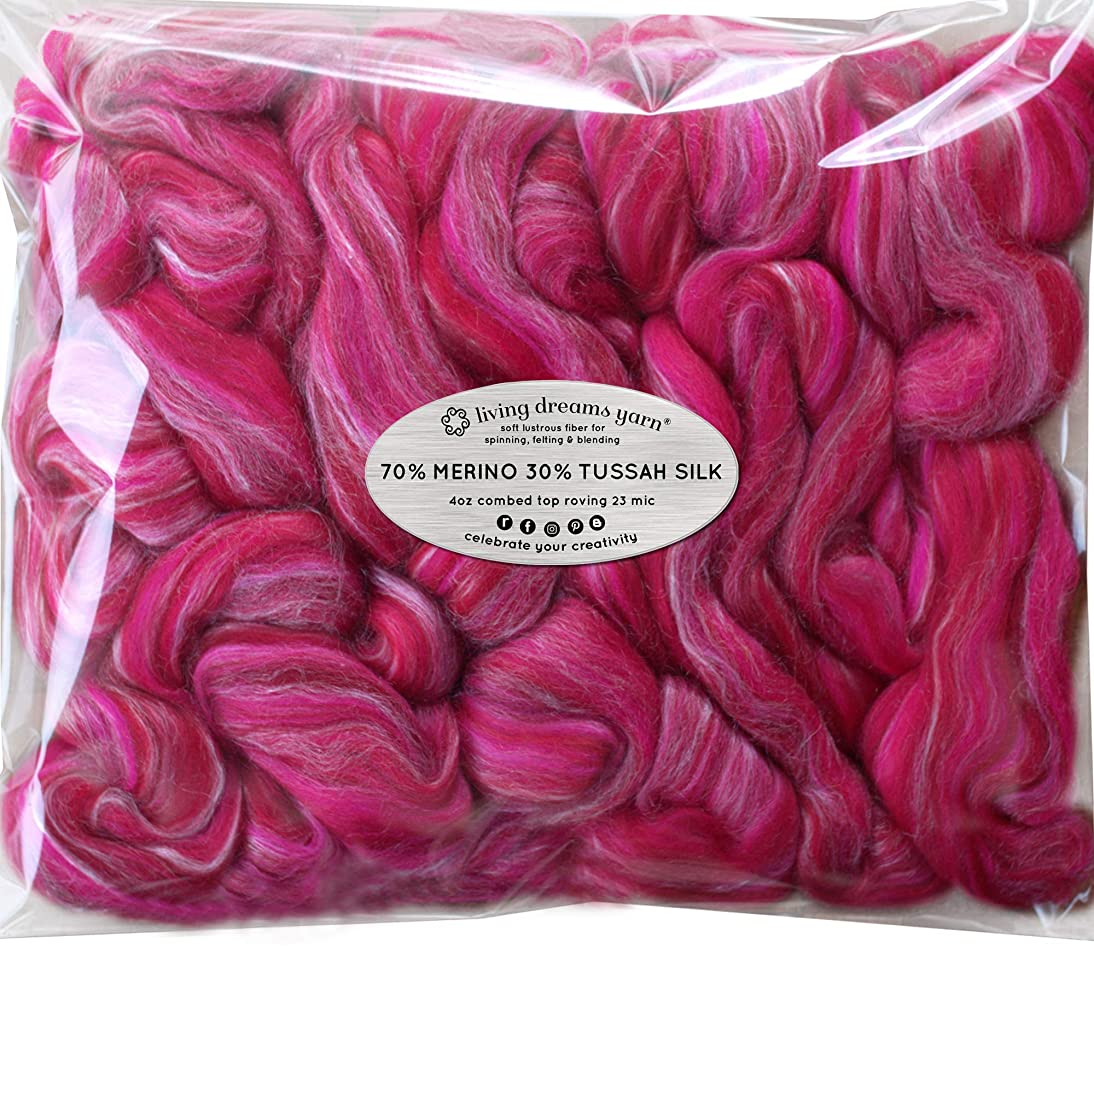 Silk Merino Fiber for Spinning. Super Soft Combed Top Wool Roving for Hand Spinning, Wet Felting, Nuno Felting, Needle Felting, Soap Making, Paper Making and Embellishments. Me & Julio